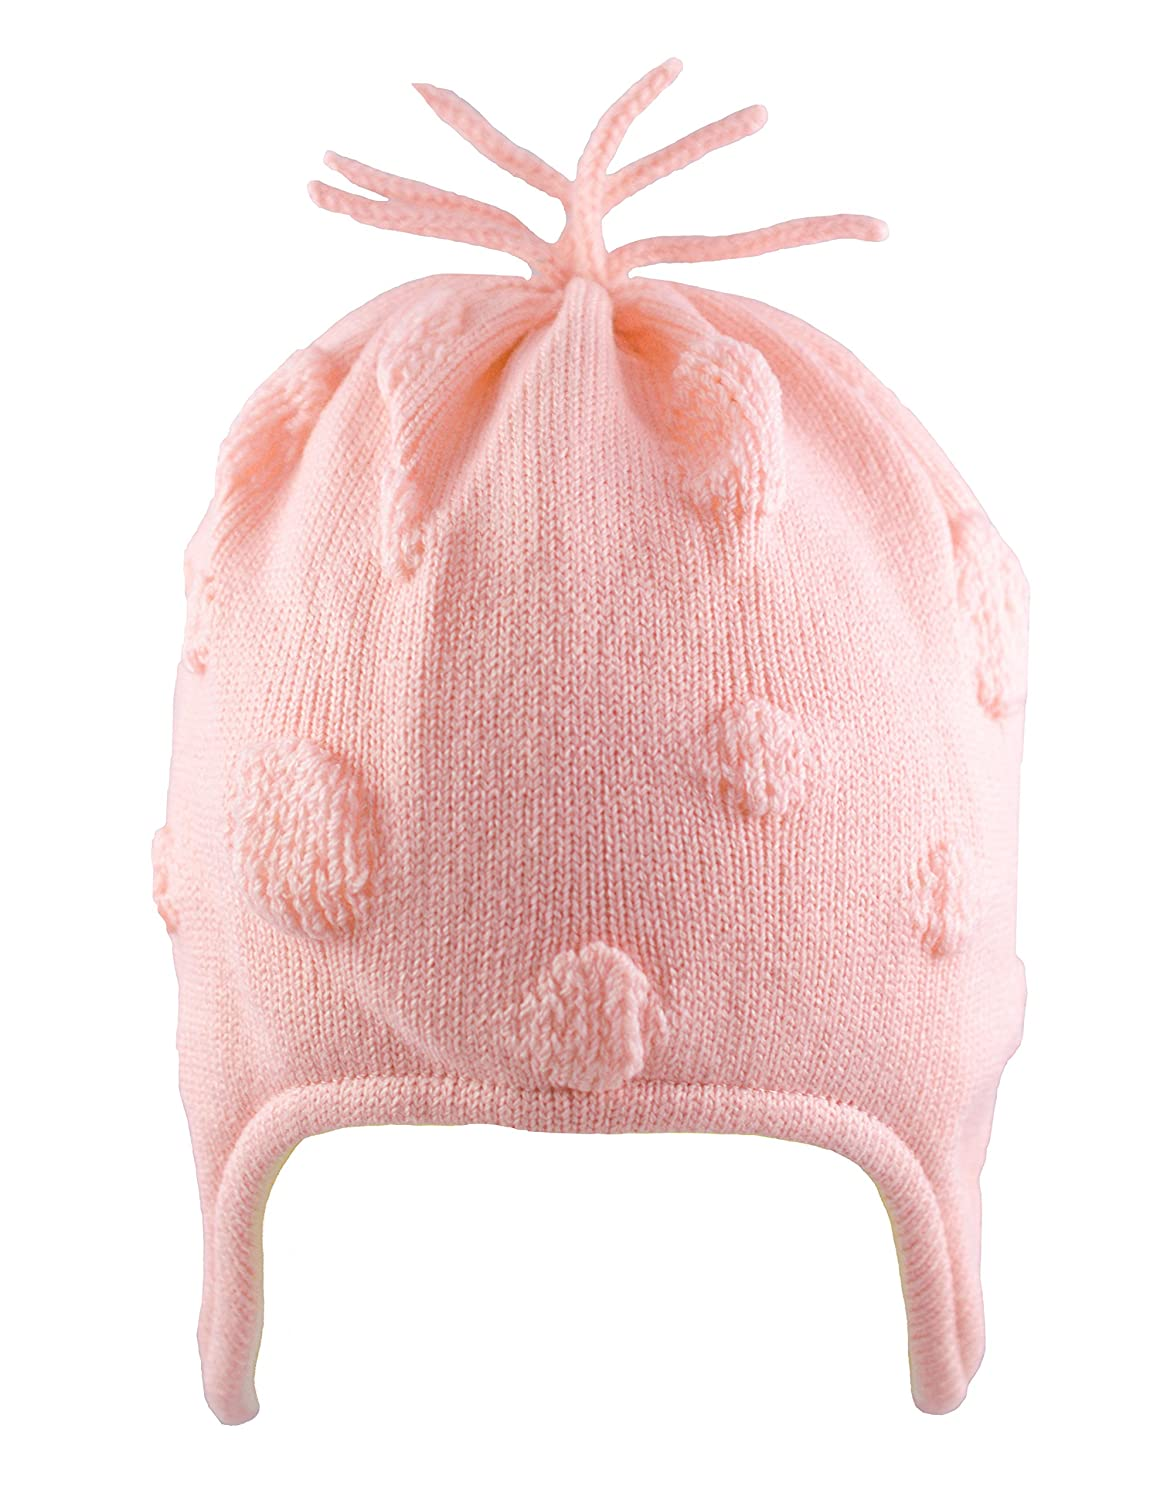 Pex Baby Girls Hat Winter Knitted with Tassels and Bubbles